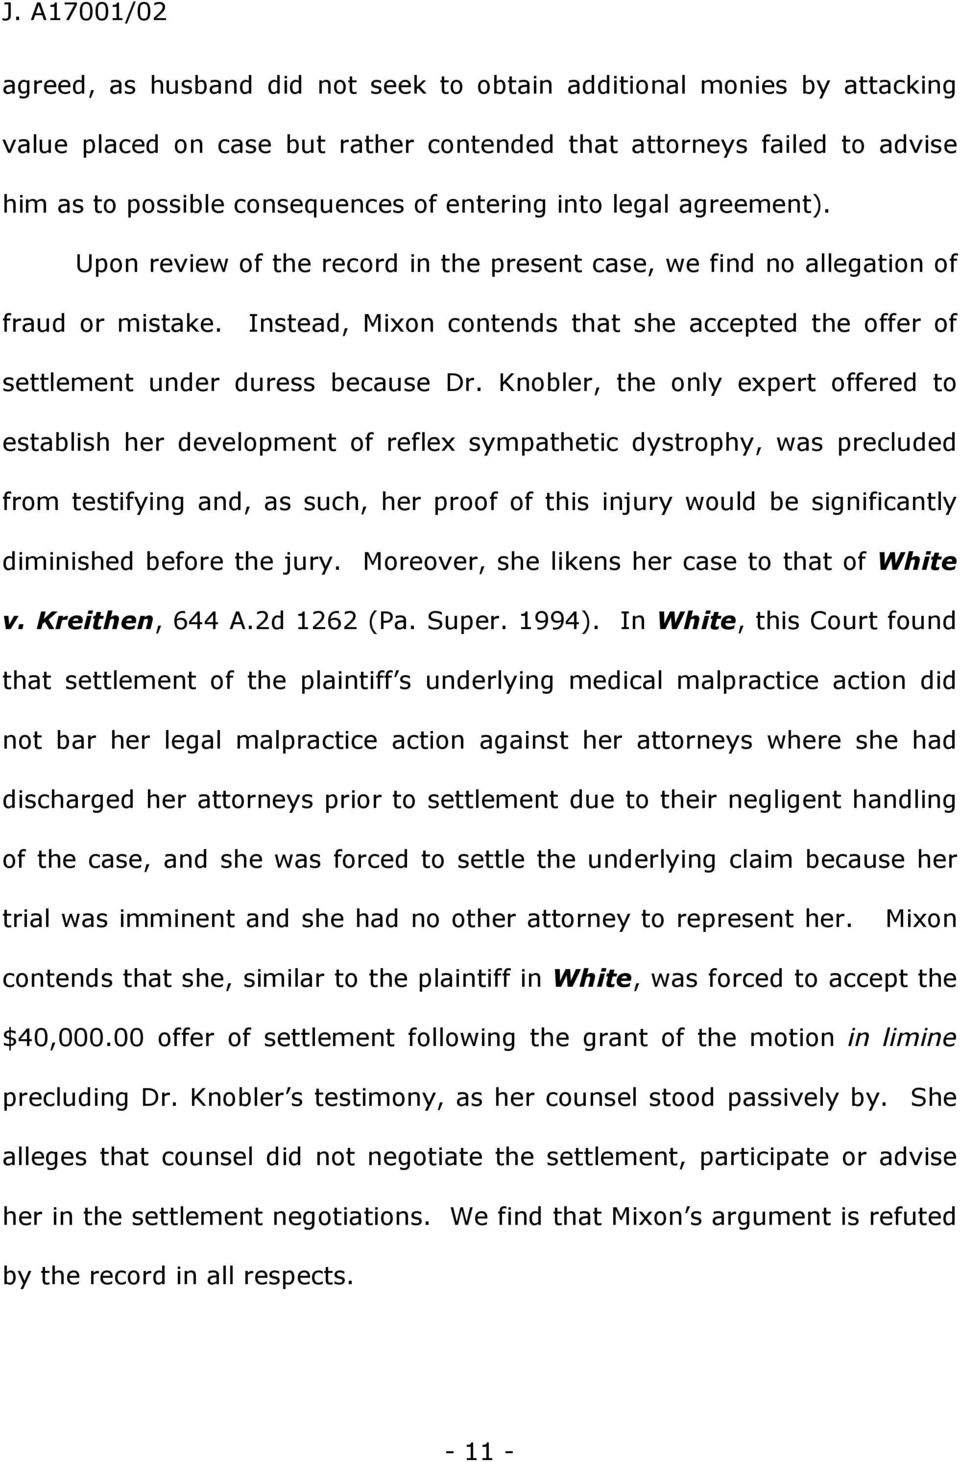 Knobler, the only expert offered to establish her development of reflex sympathetic dystrophy, was precluded from testifying and, as such, her proof of this injury would be significantly diminished